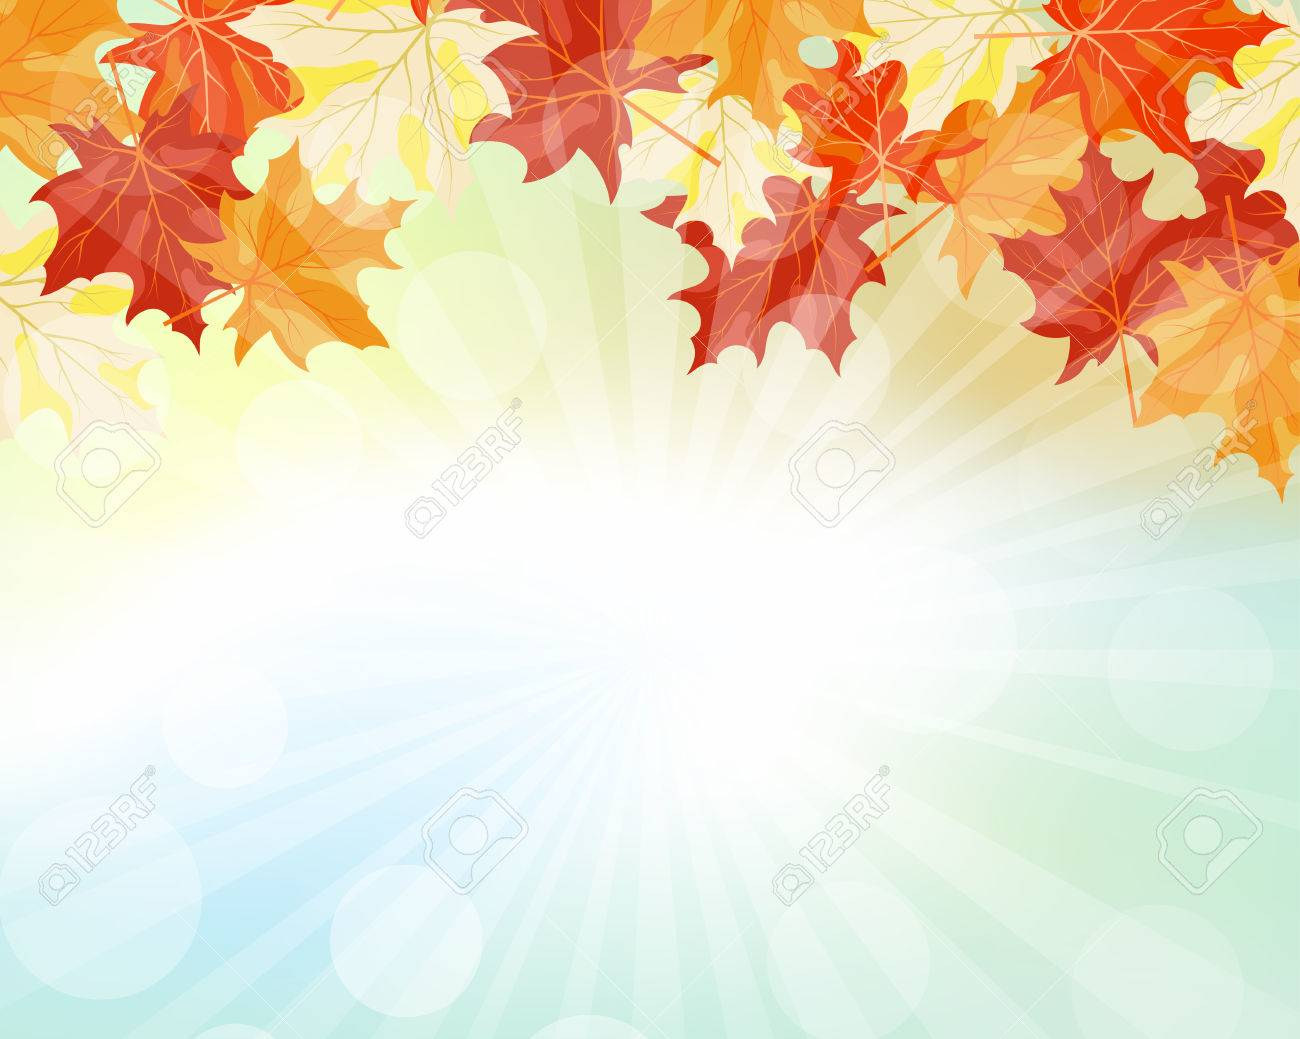 Autumn Frame With Falling Maple Leaves on Sky Background. Elegant Design with Rays of Sun and Ideal Balanced Colors. Vector Illustration. - 44382504